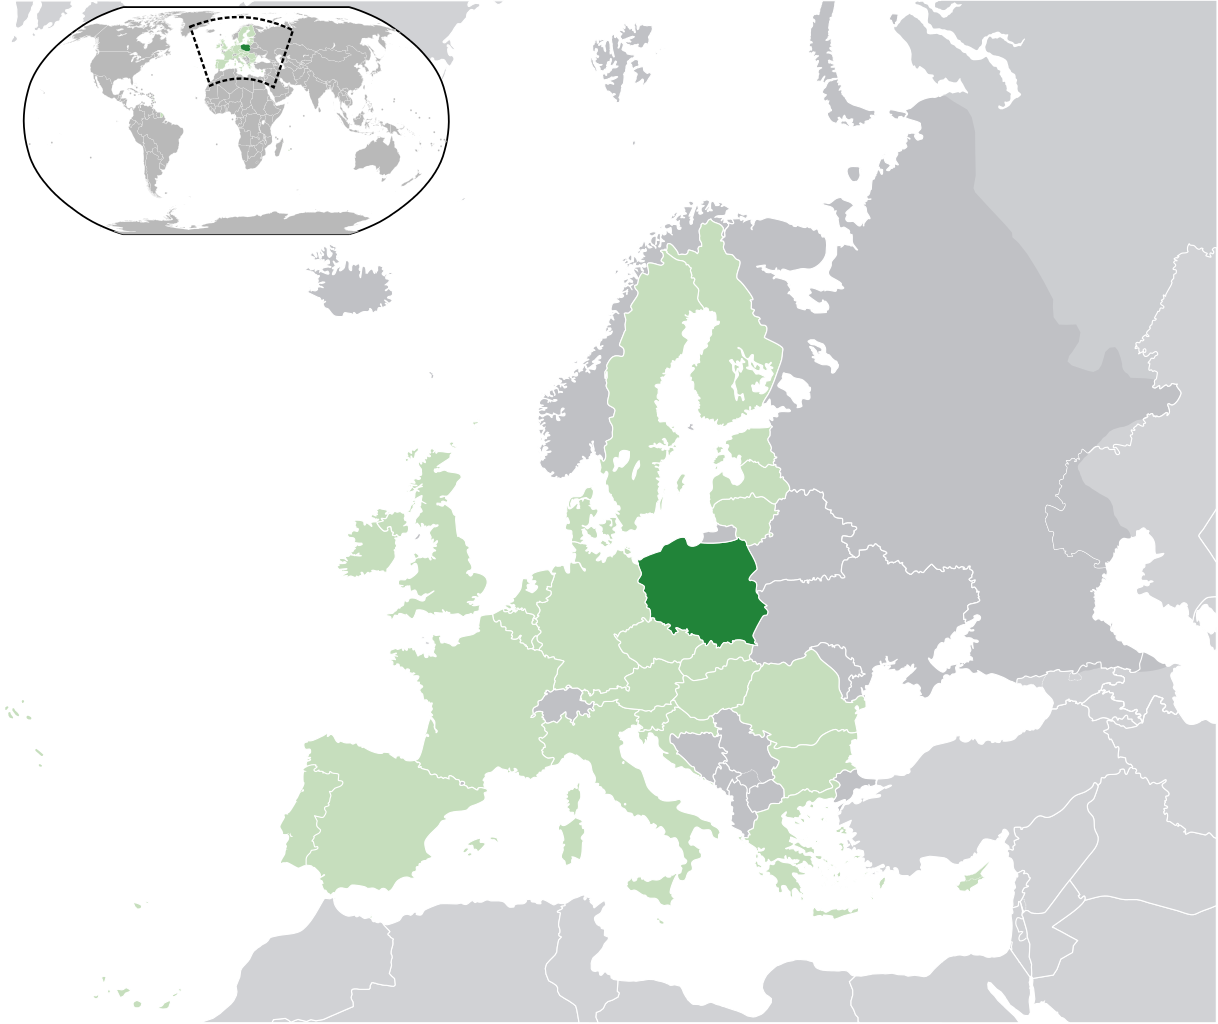 Poland and other European NATO members